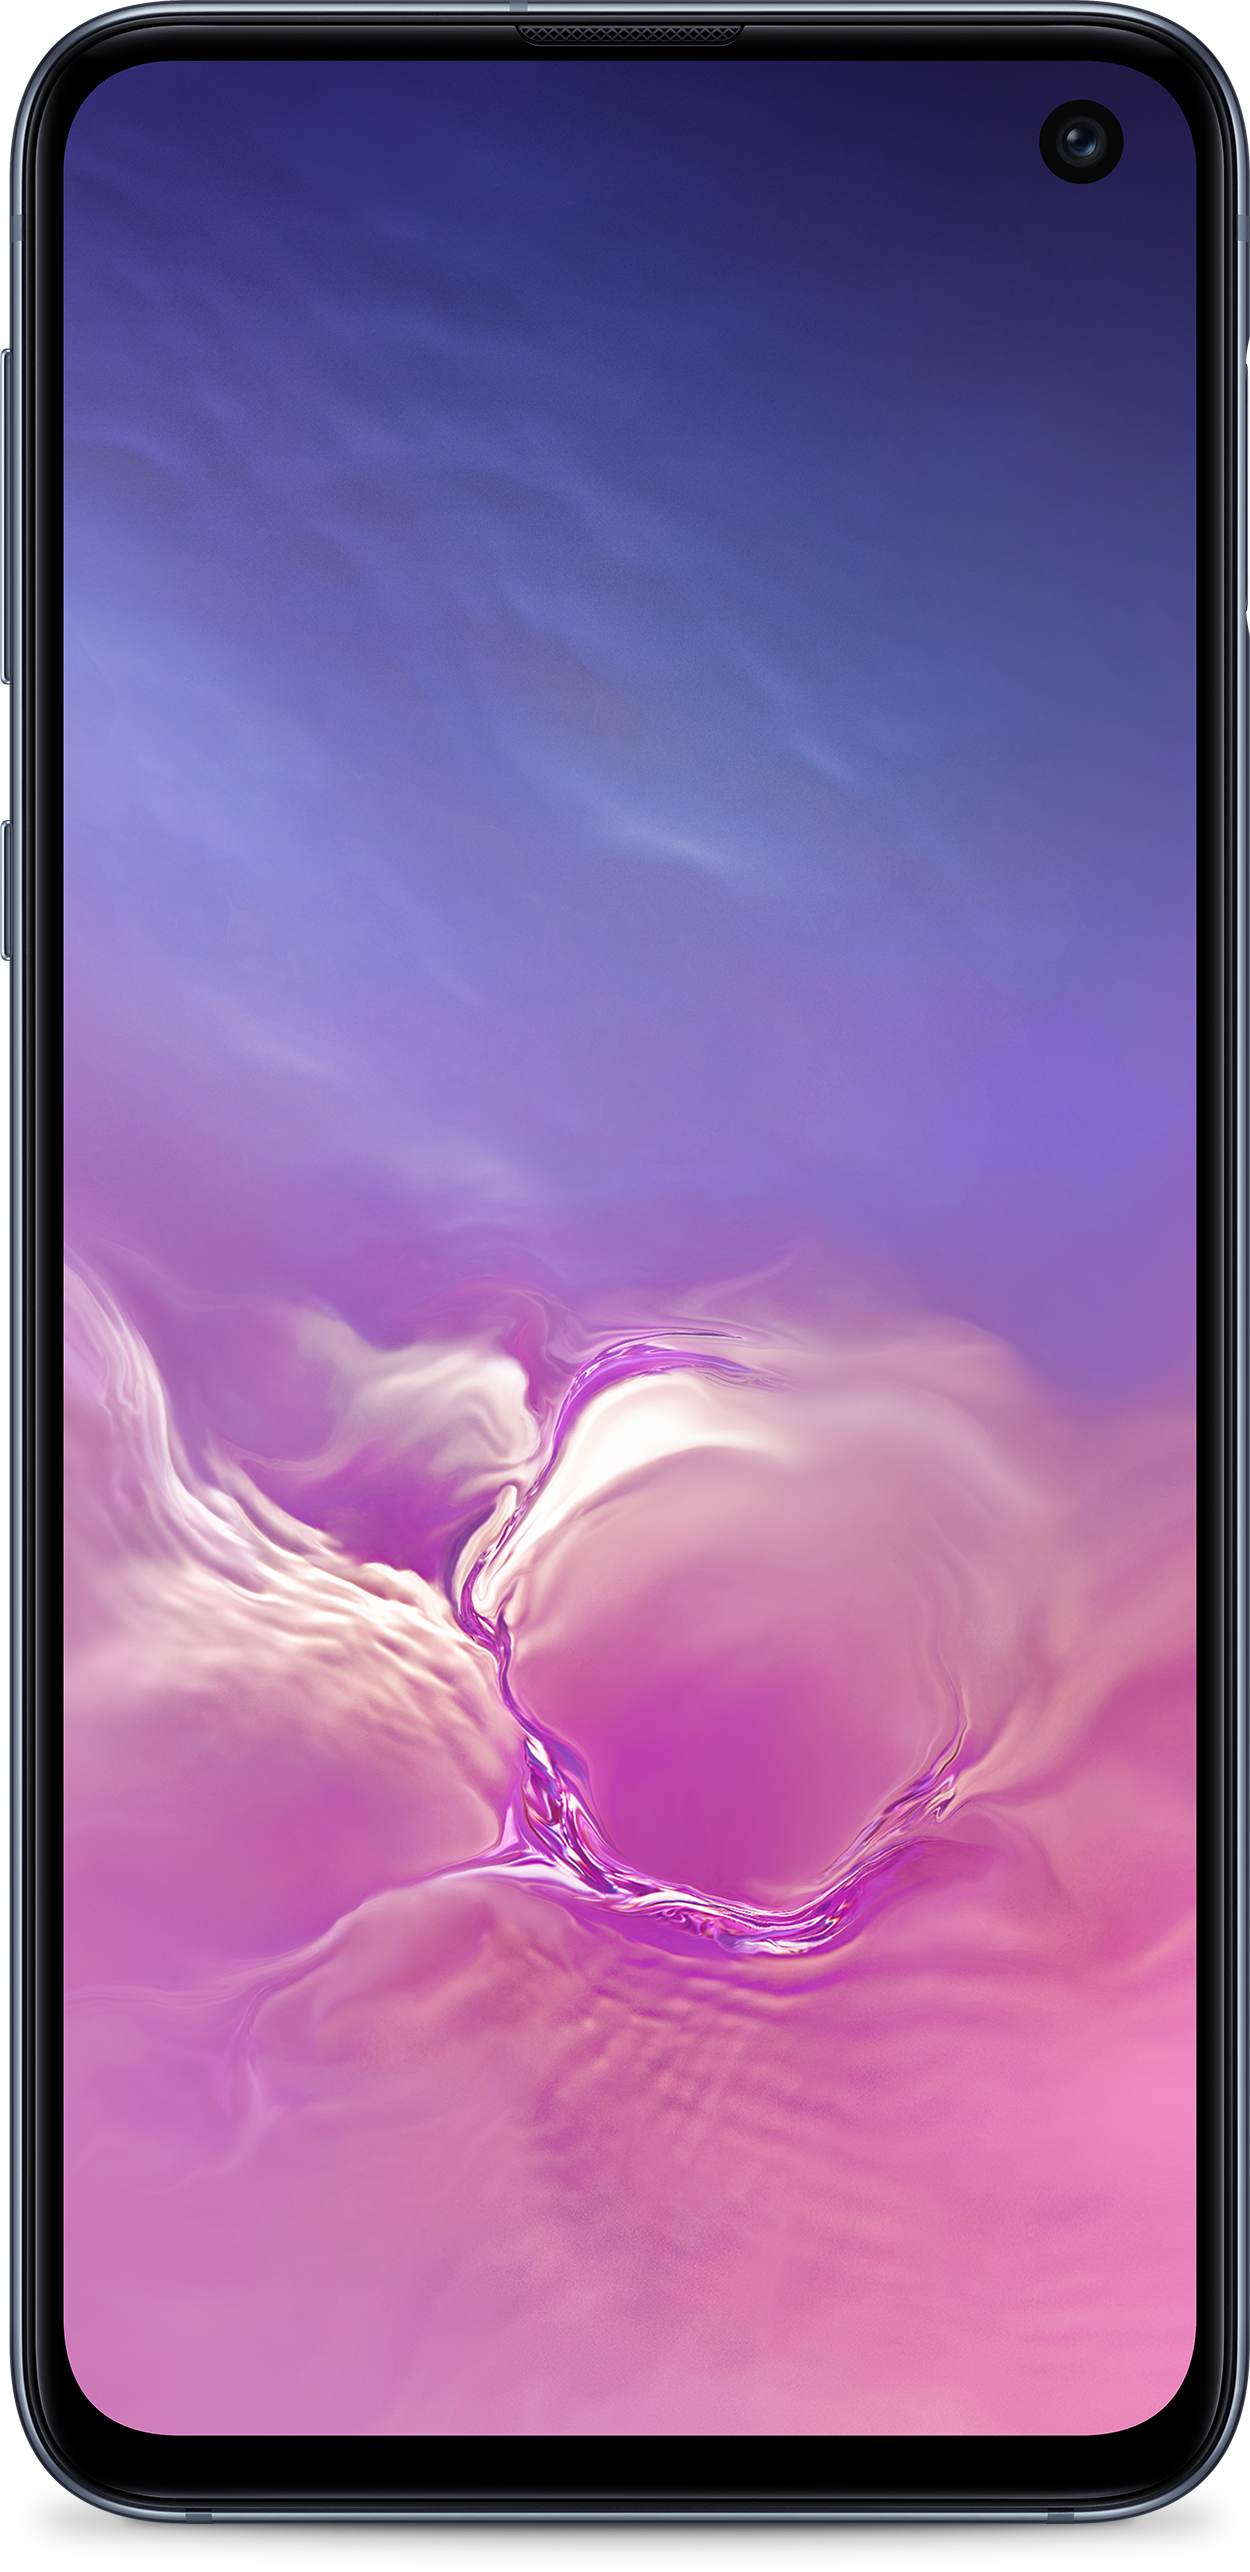 Samsung Galaxy S10e in Black from the front